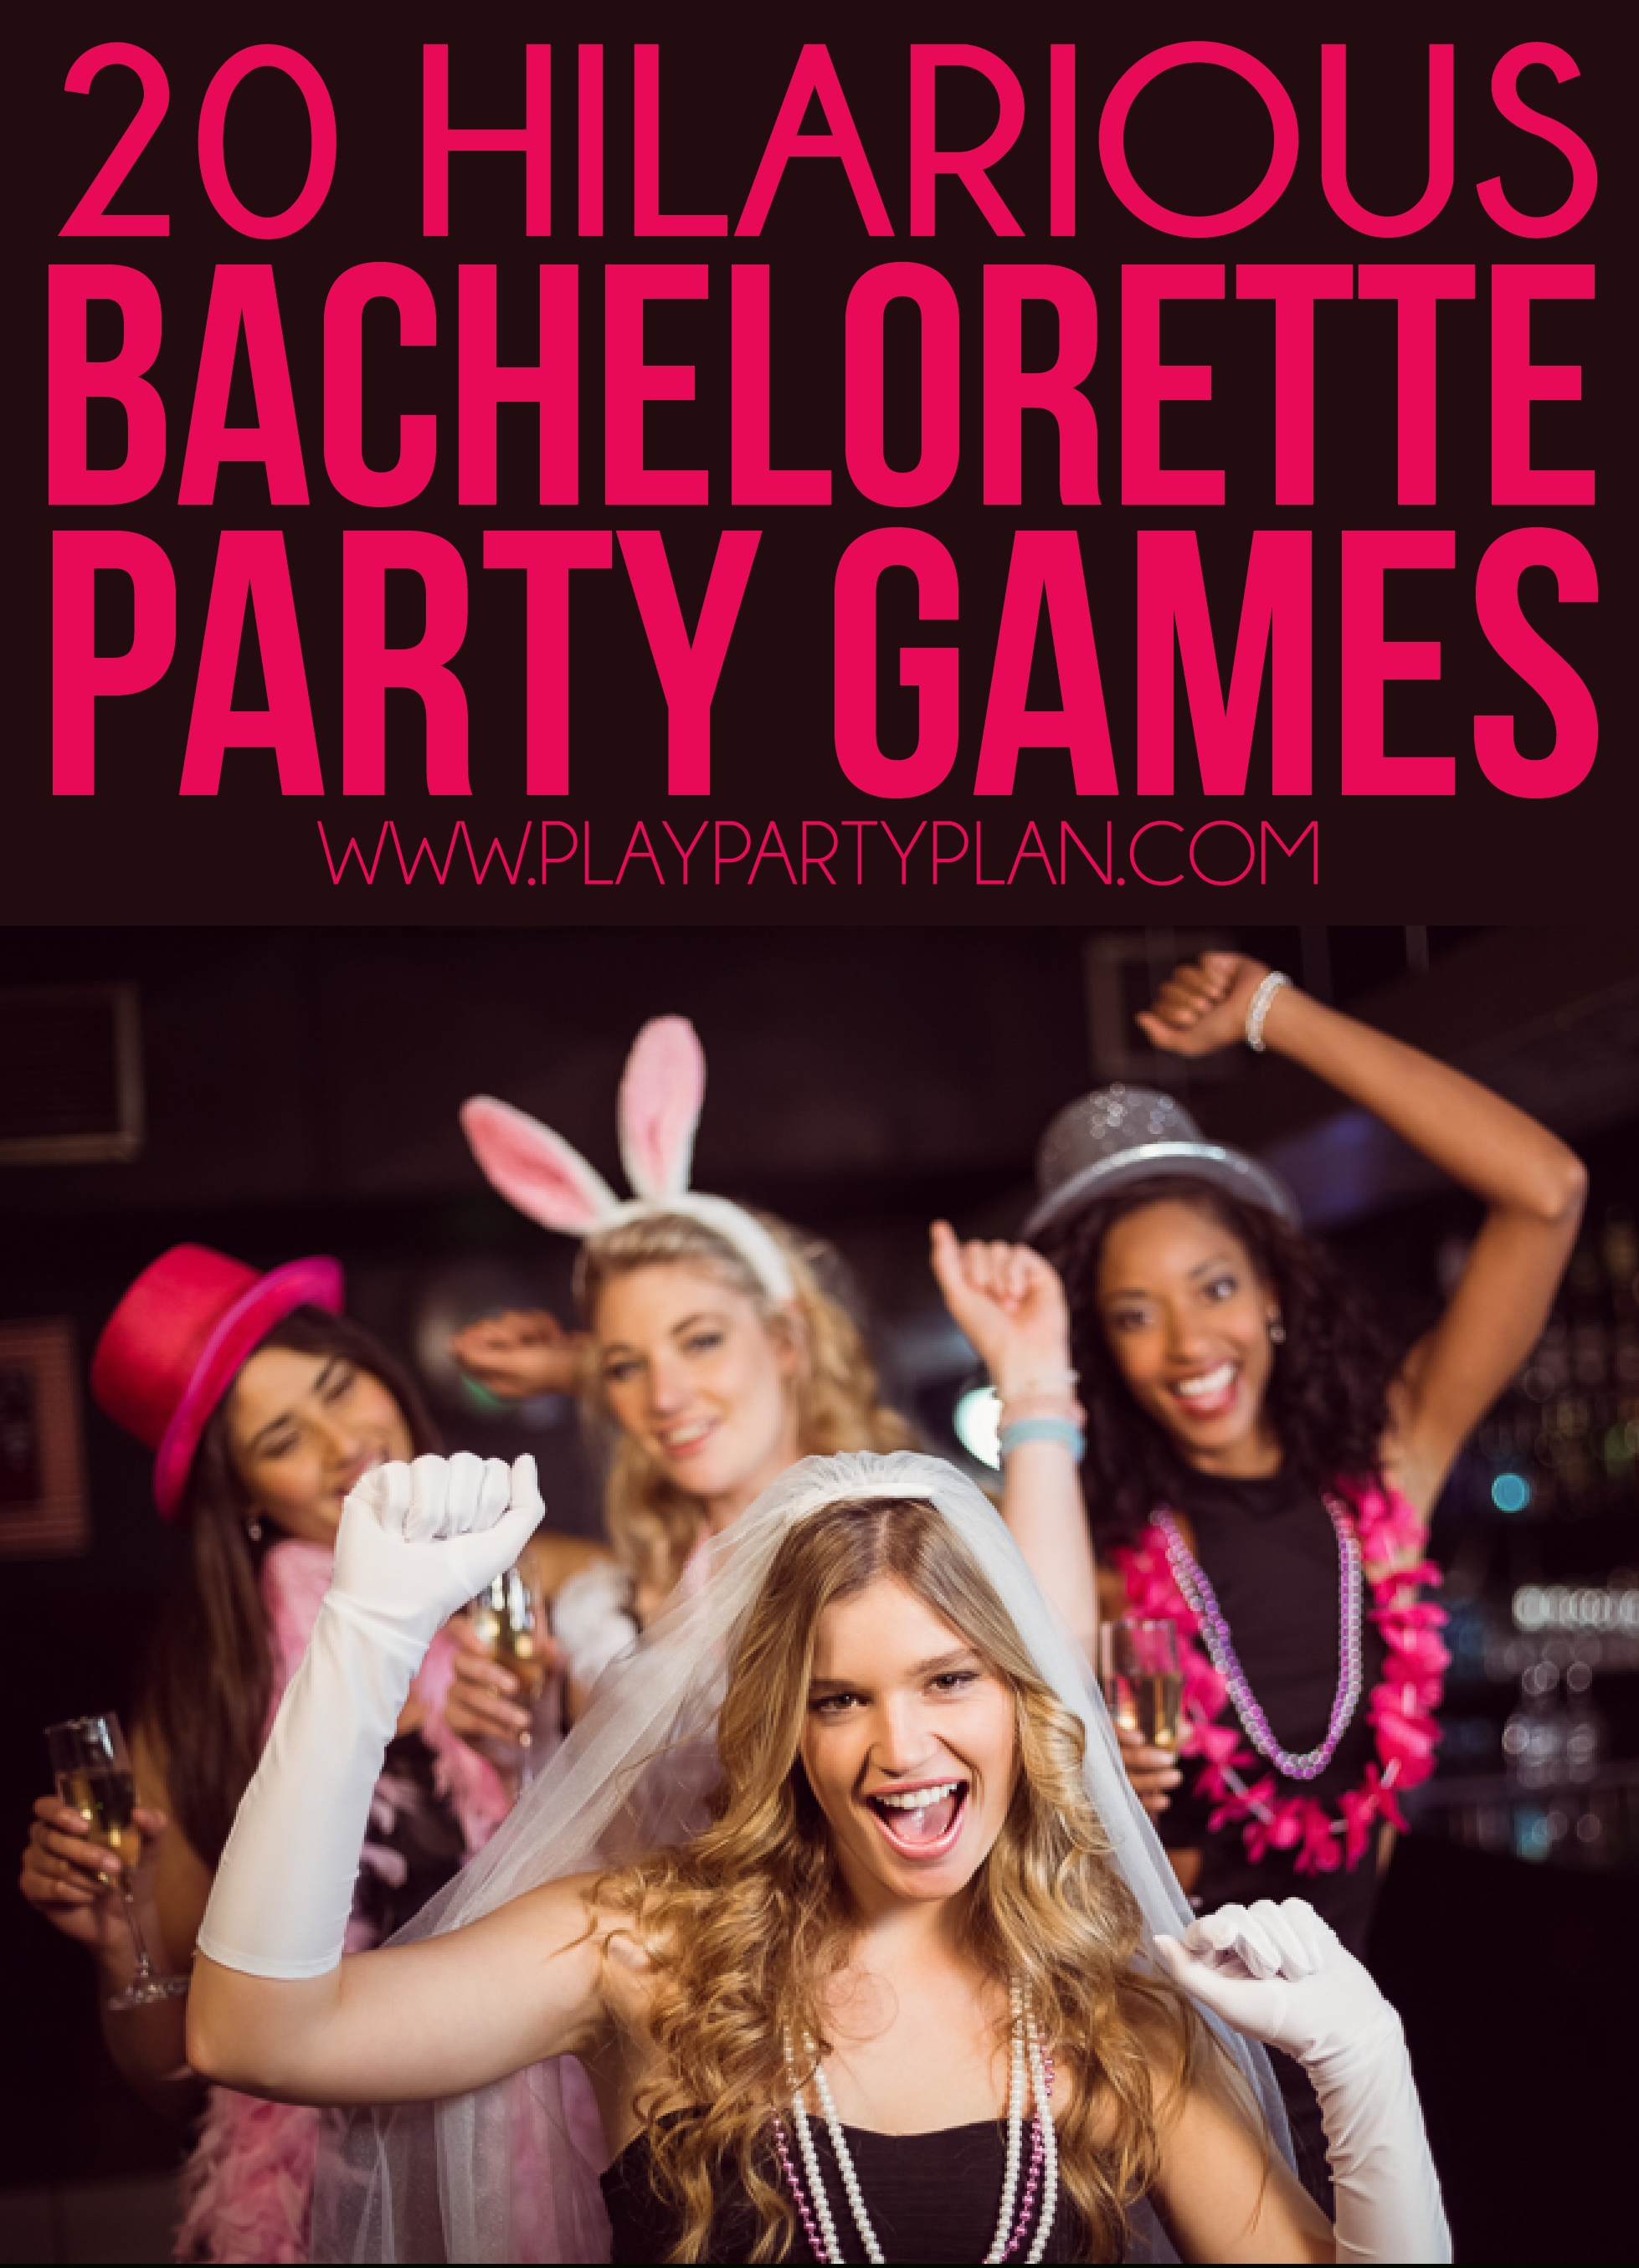 10 Spectacular Fun Ideas For A Bachelorette Party 20 hilarious bachelorette party games thatll have you laughing all 1 2021